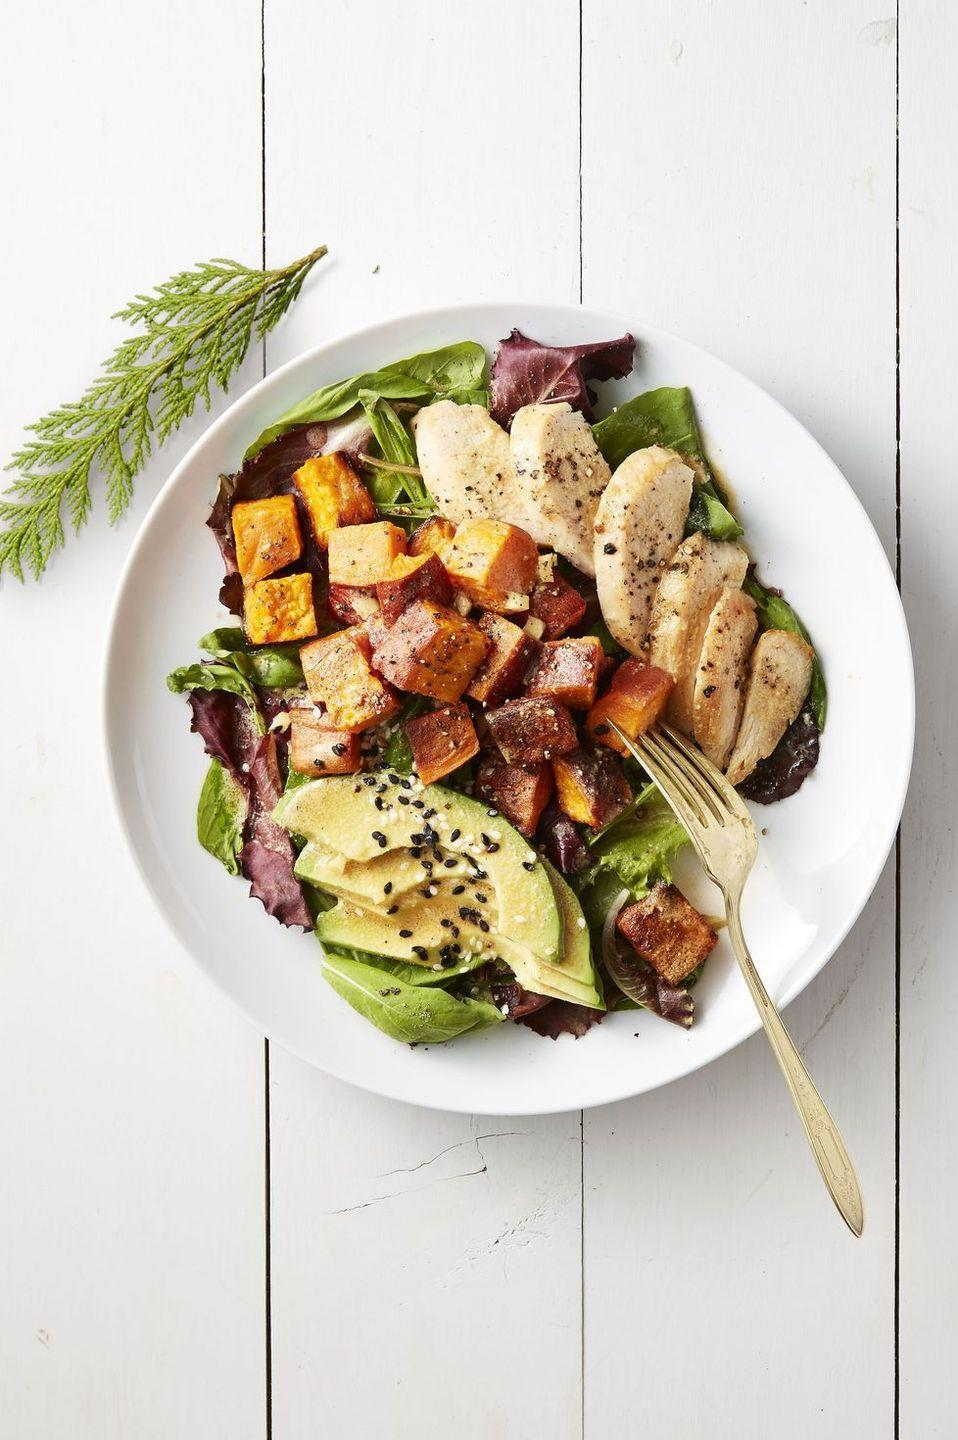 """<p>As long as you didn't only serve mashed potatoes, you can top this protein-packed solid with roasted sweet potatoes. </p><p><em><a href=""""https://www.goodhousekeeping.com/food-recipes/easy/a42180/roasted-sweet-potato-and-chicken-salad-recipe/"""" rel=""""nofollow noopener"""" target=""""_blank"""" data-ylk=""""slk:Get the recipe for Roasted Sweet Potato and Chicken Salad »"""" class=""""link rapid-noclick-resp"""">Get the recipe for Roasted Sweet Potato and Chicken Salad »</a></em></p>"""